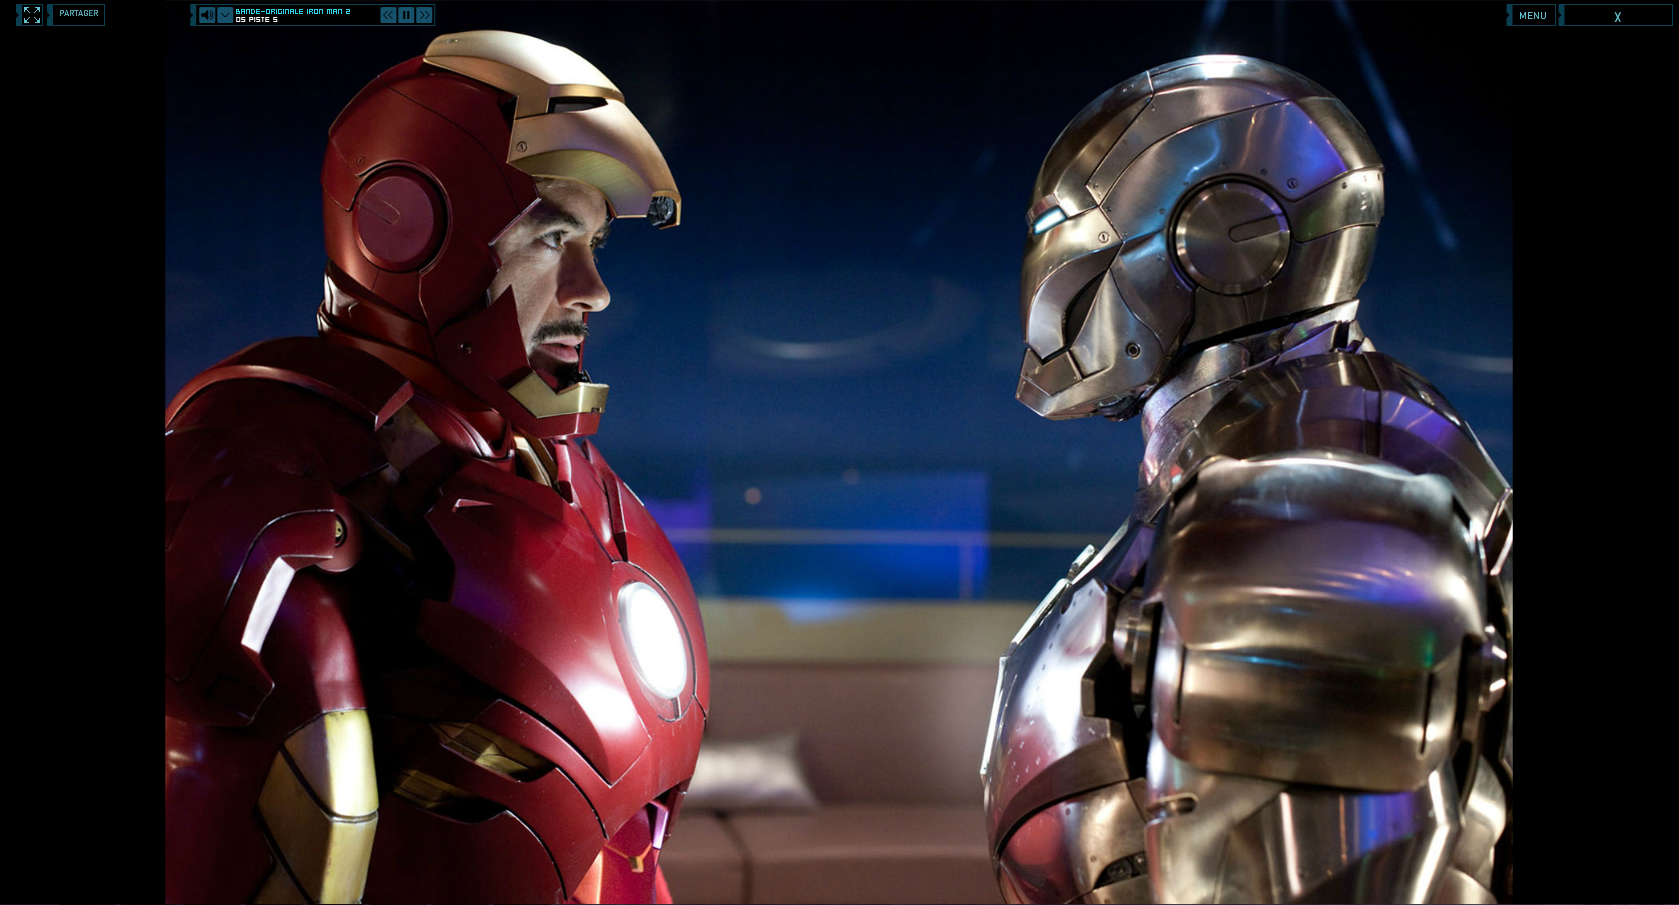 Wallpaper Iron Man 2 Tony Stark VS James Rhodes Iron Man